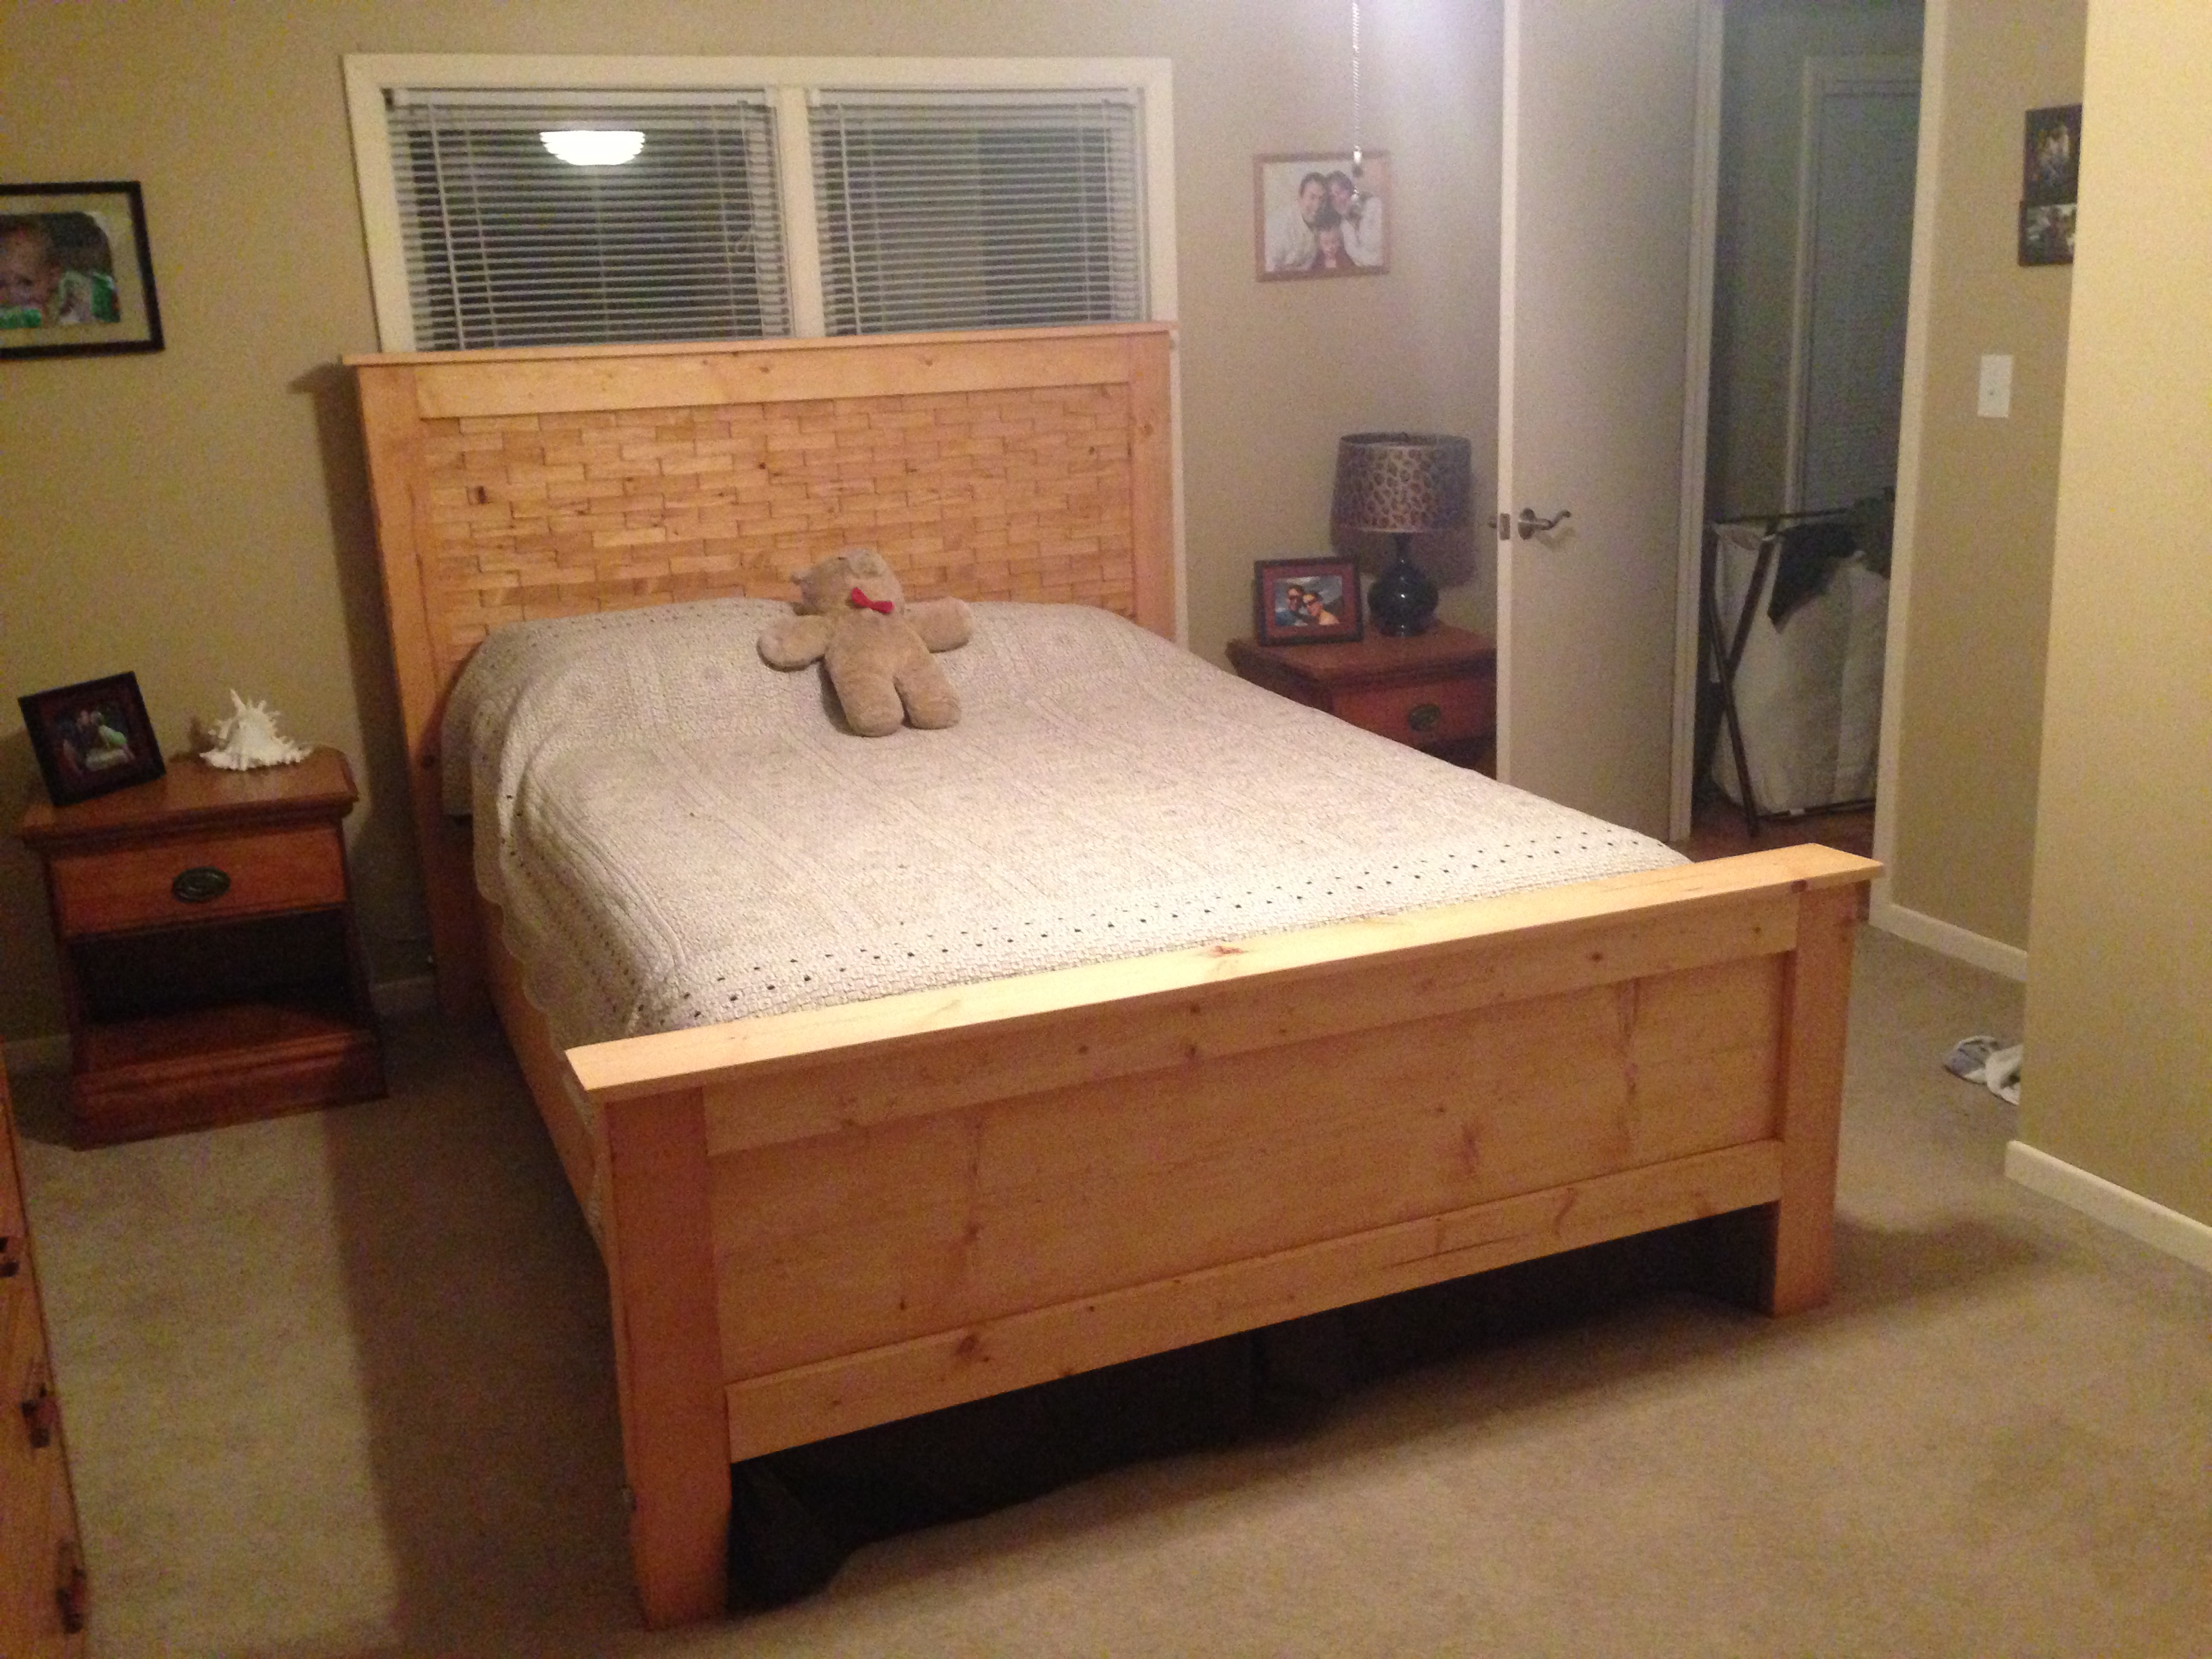 Ana white diy wood shim bed plans queen diy projects for Bed frame plans